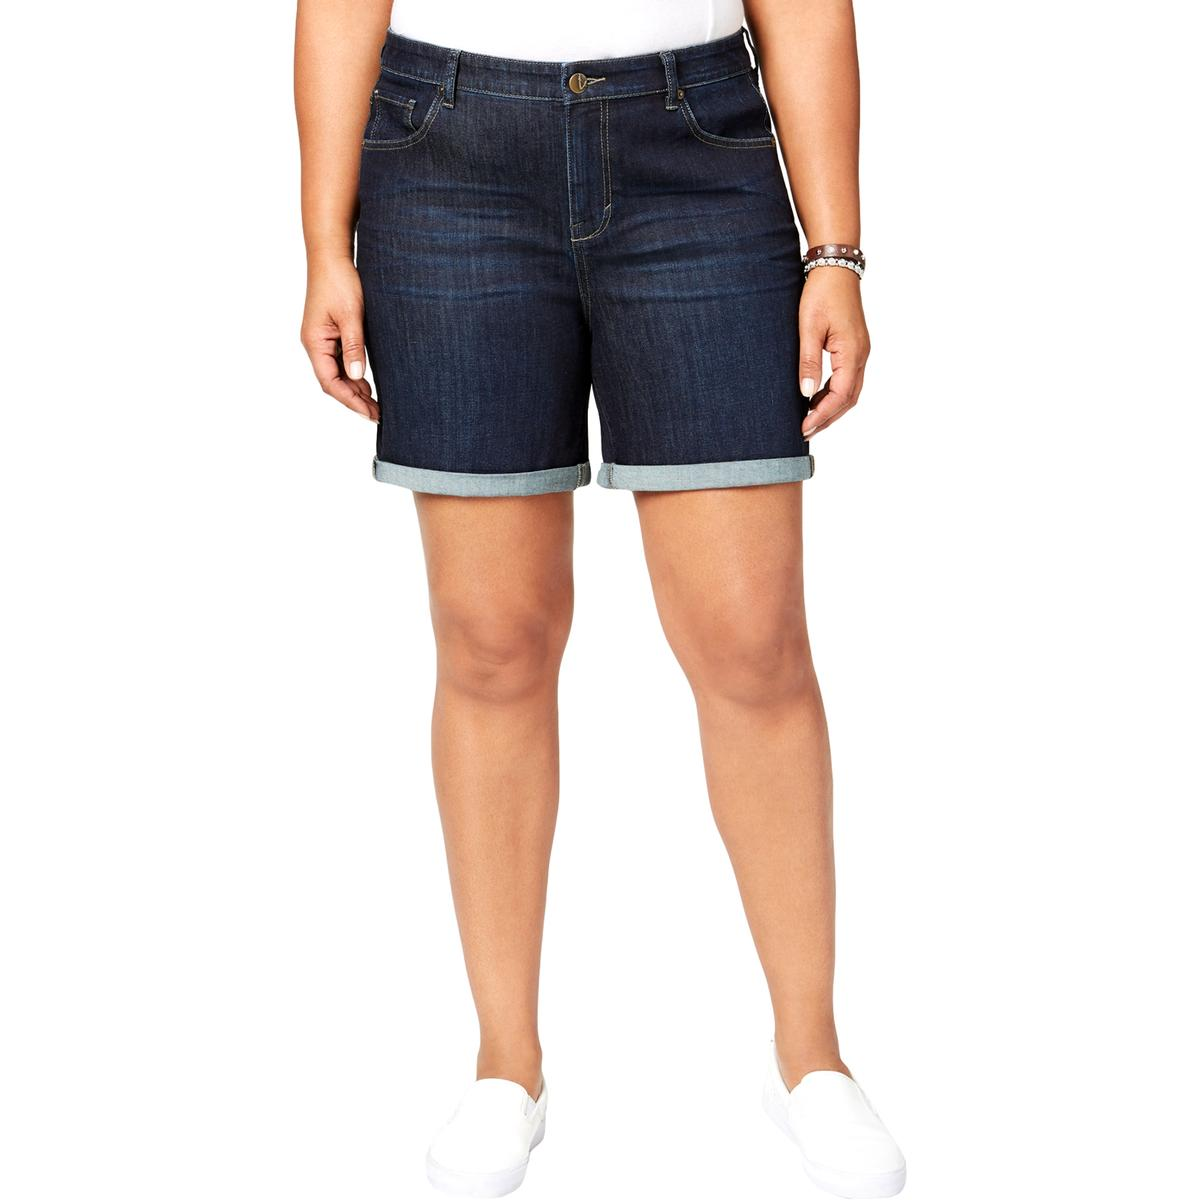 2a6cdc4089 Style & Co. Womens Navy Whisker Wash Mid Rise Denim Shorts Plus 24W ...